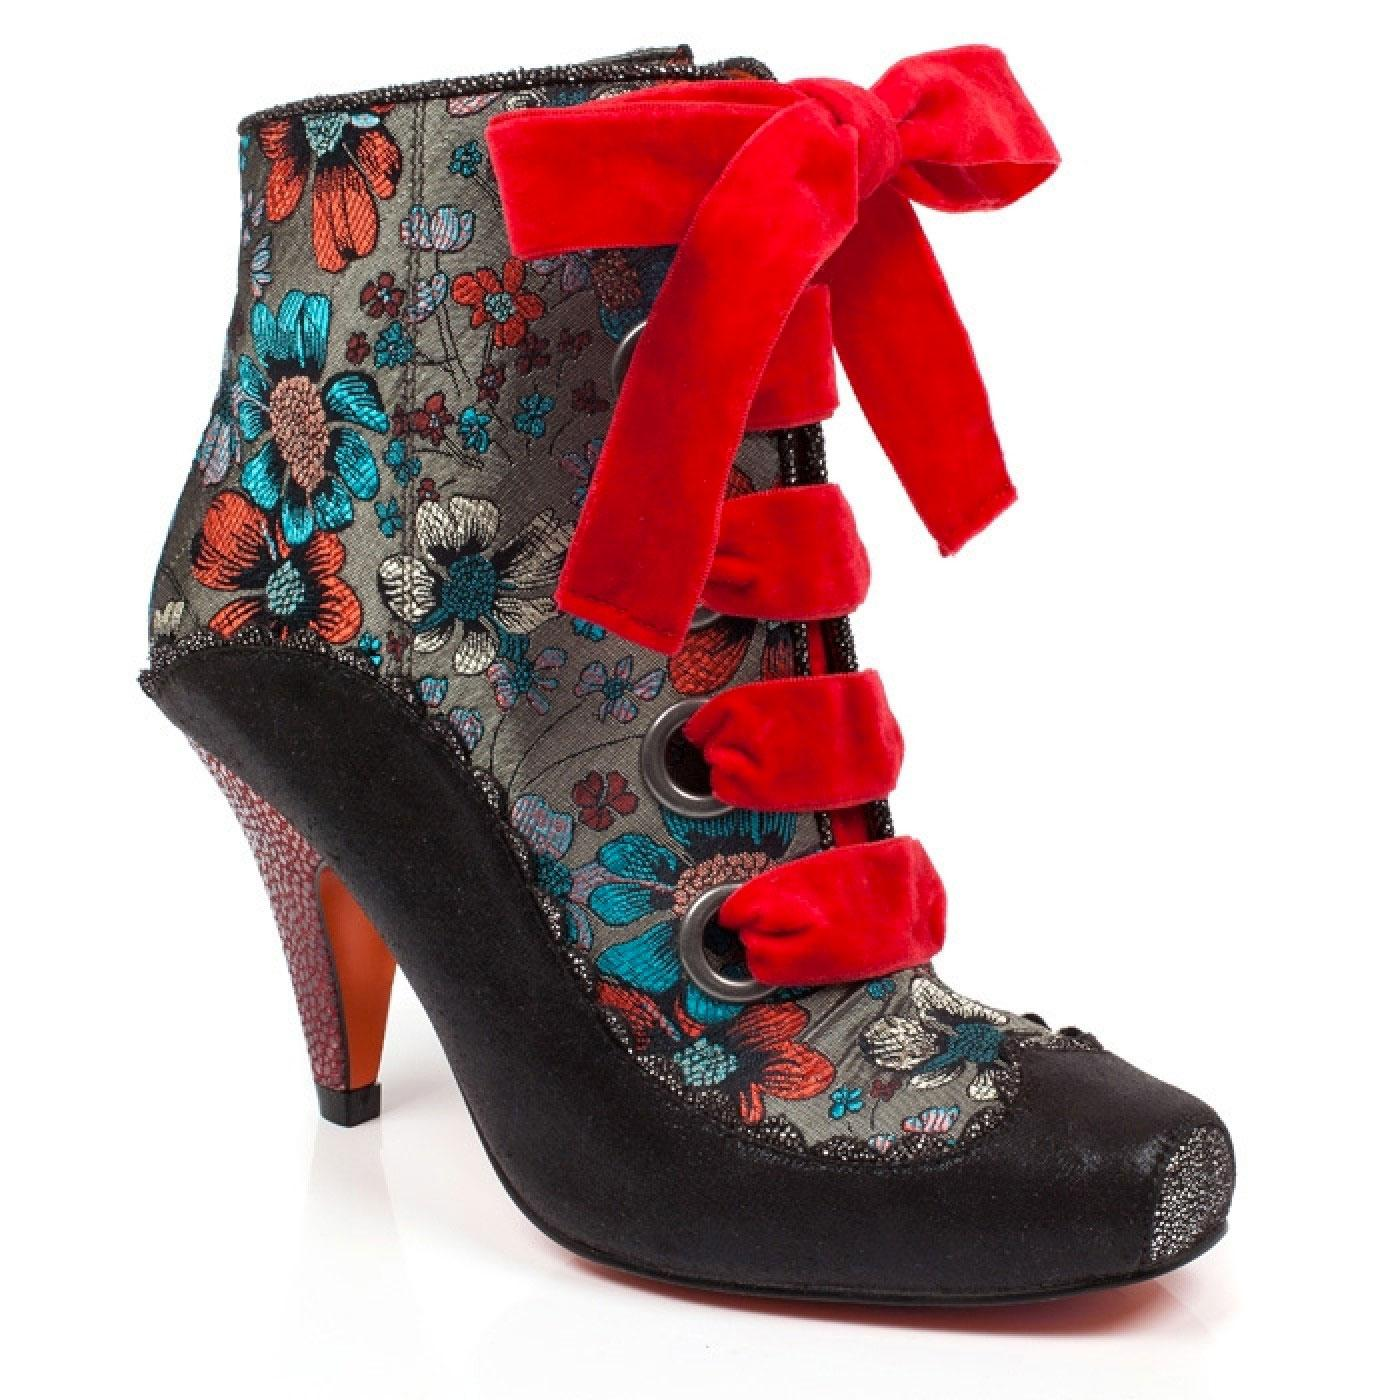 Perennial Passion POETIC LICENCE Floral Heel Boots